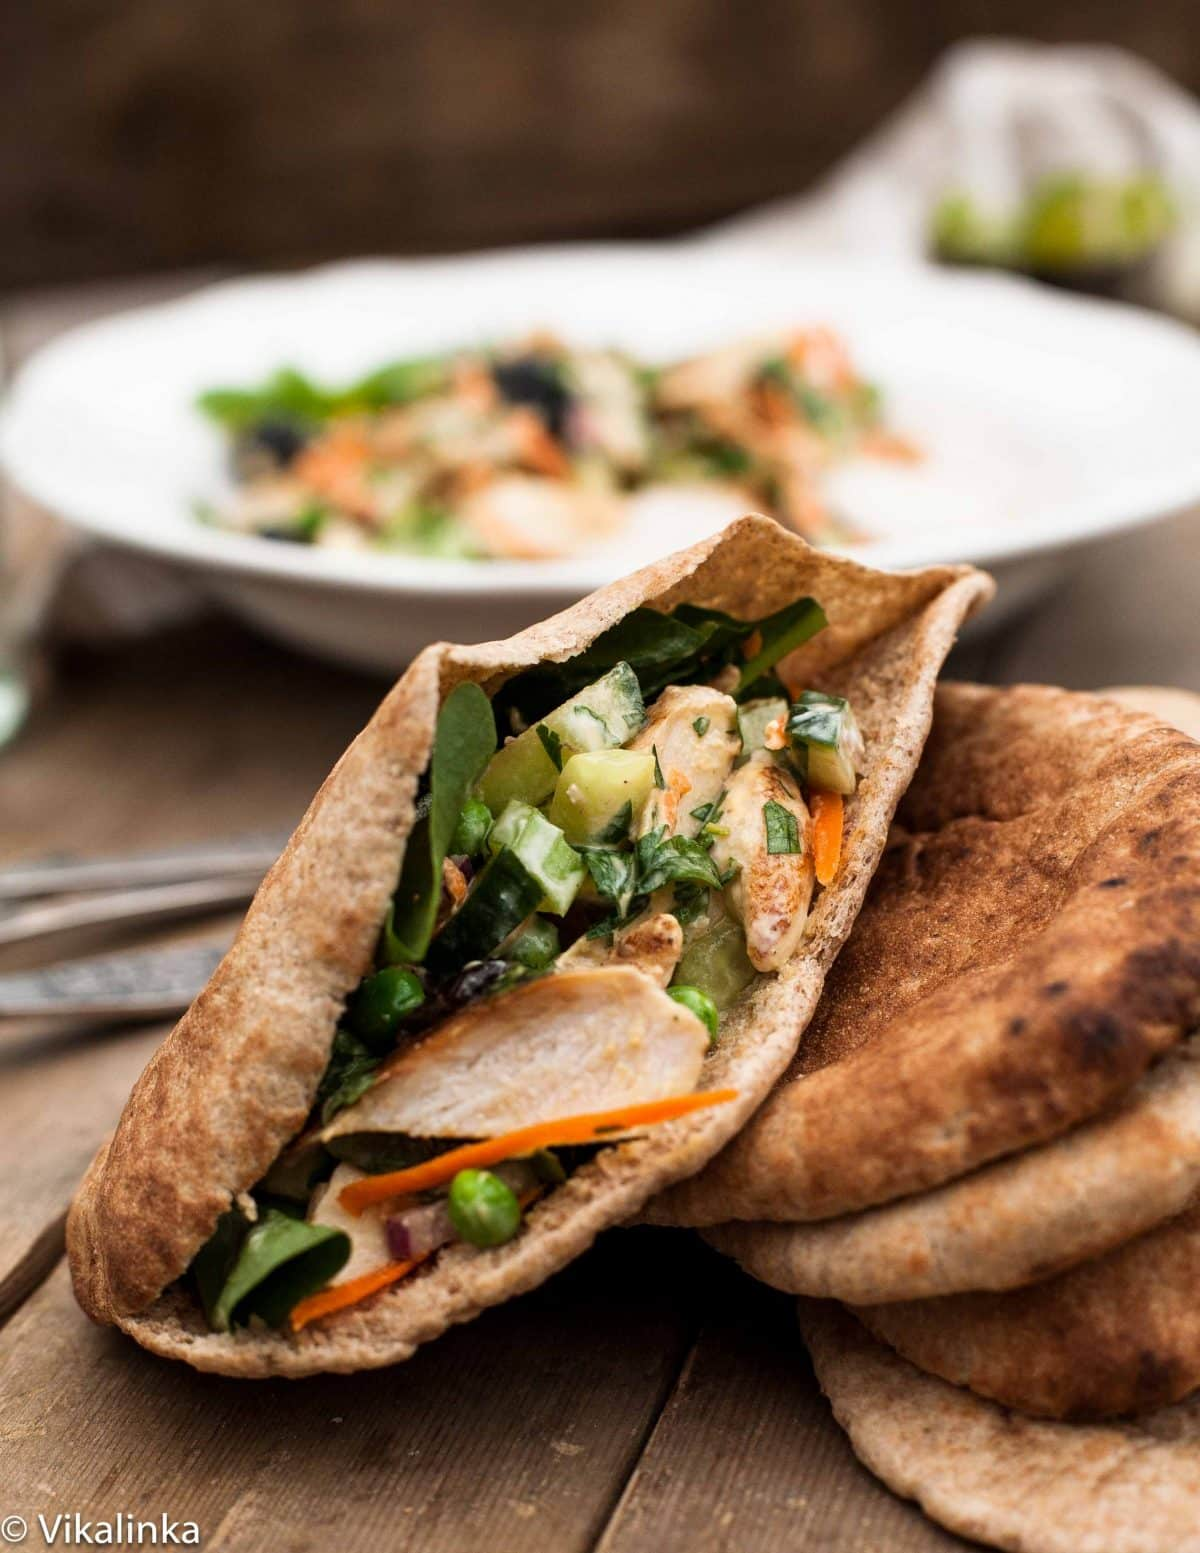 Chicken sald in pita bread with salad in background